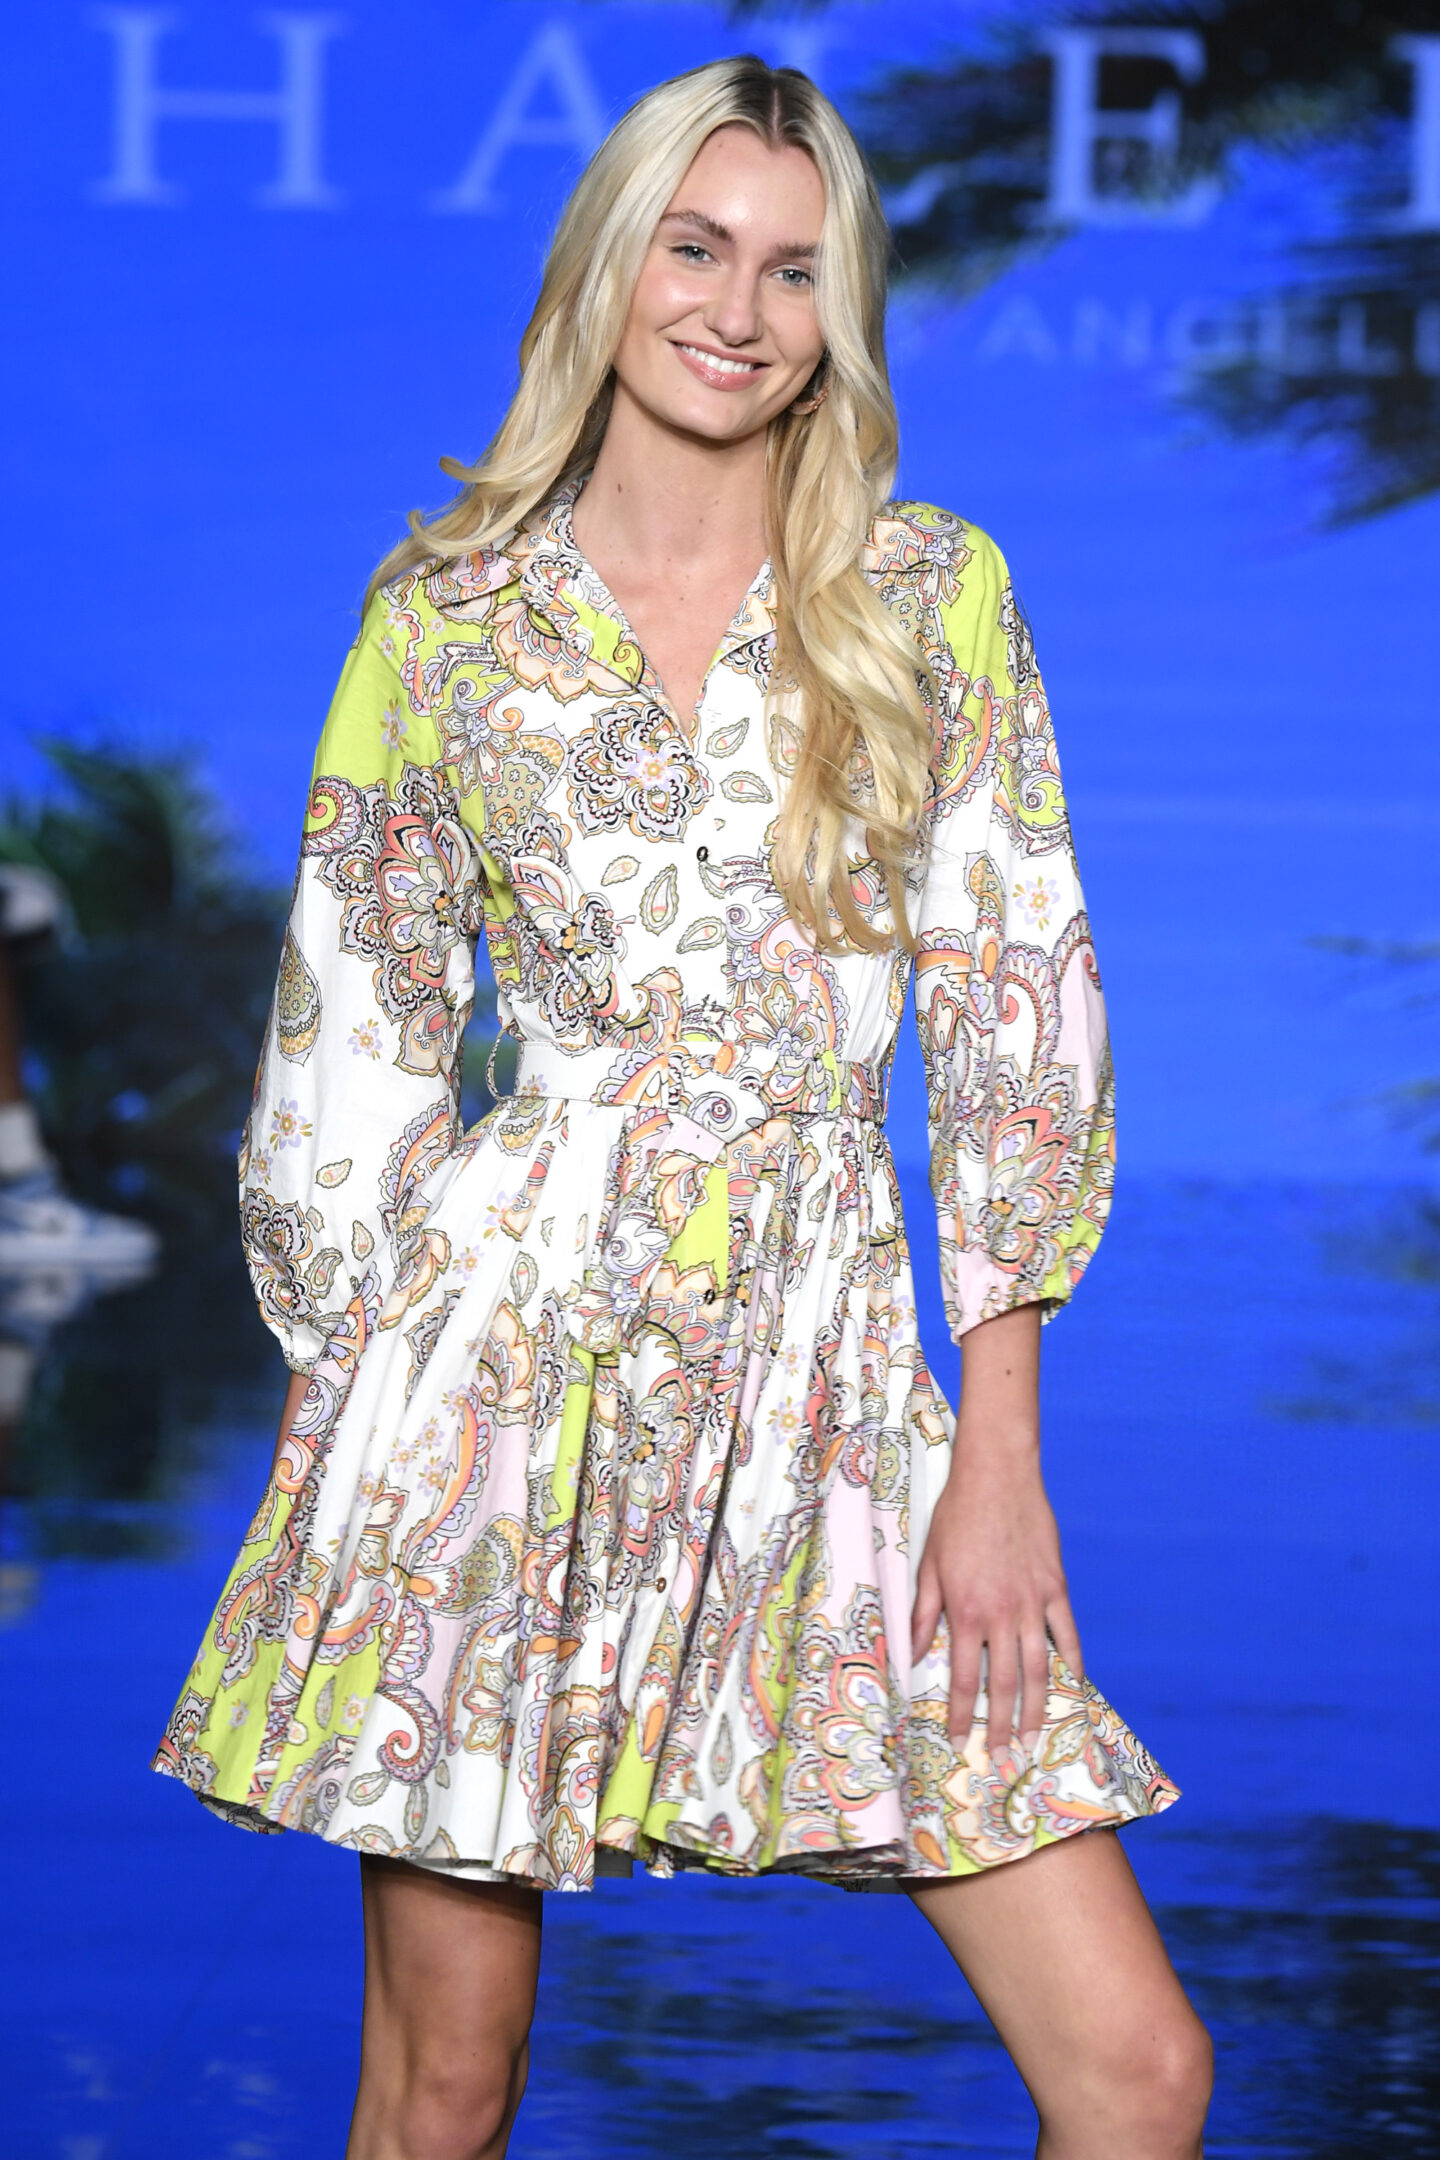 MIAMI BEACH, FLORIDA - JULY 11: A model walks the runway at the Hale Bob Show during Miami Swim Week Powered By Art Hearts Fashion at Faena Forum on July 11, 2021 in Miami Beach, Florida. (Photo by Arun Nevader/Getty Images for Art Hearts Fashion)